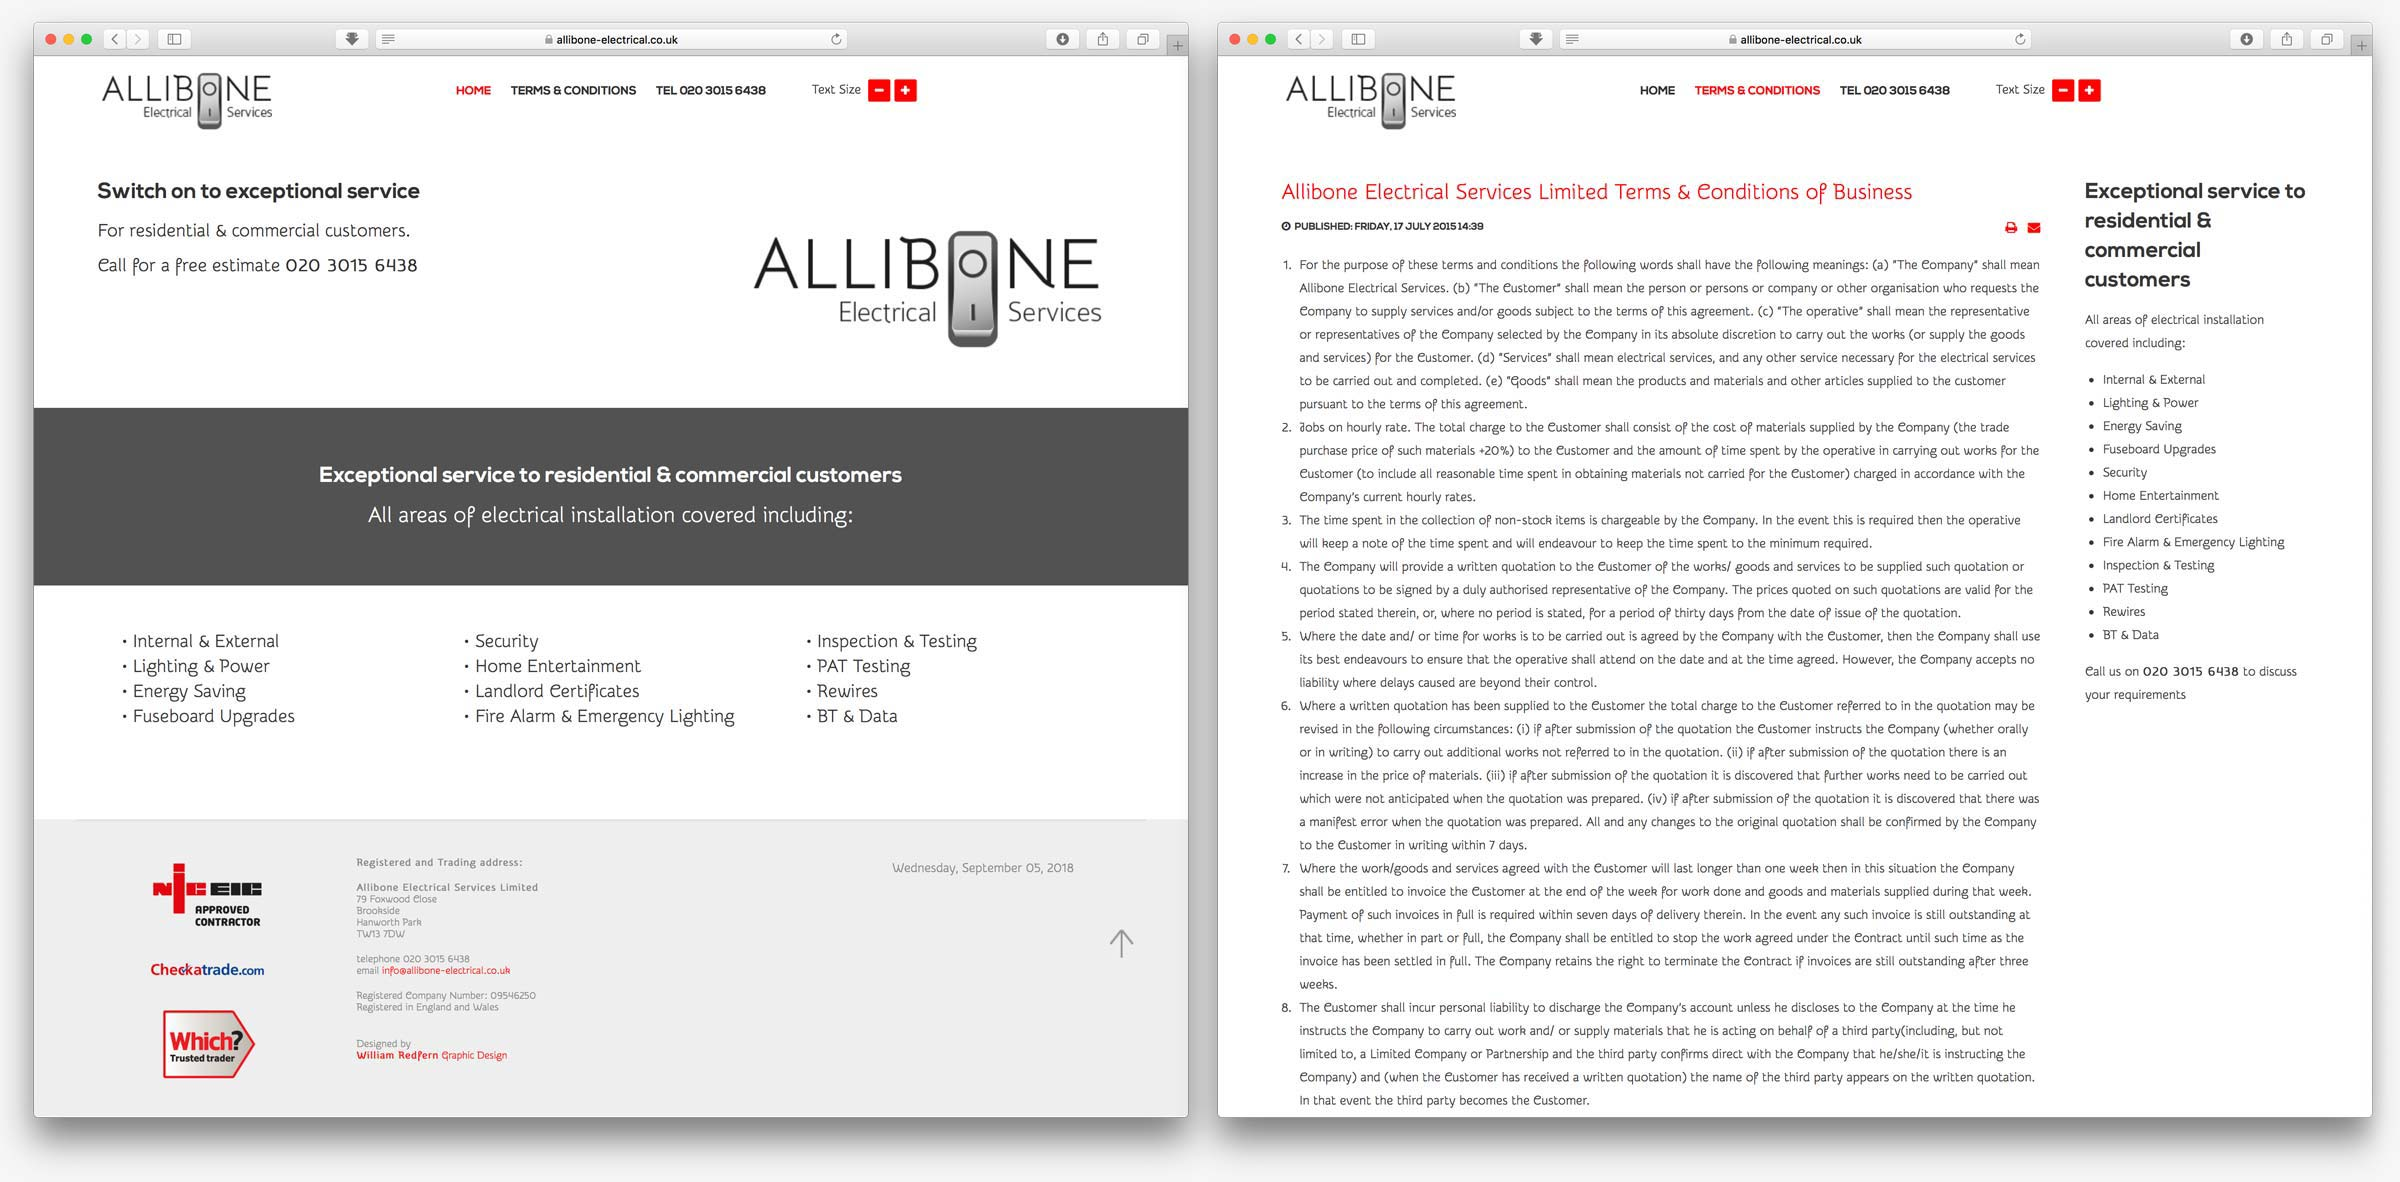 Allibone website